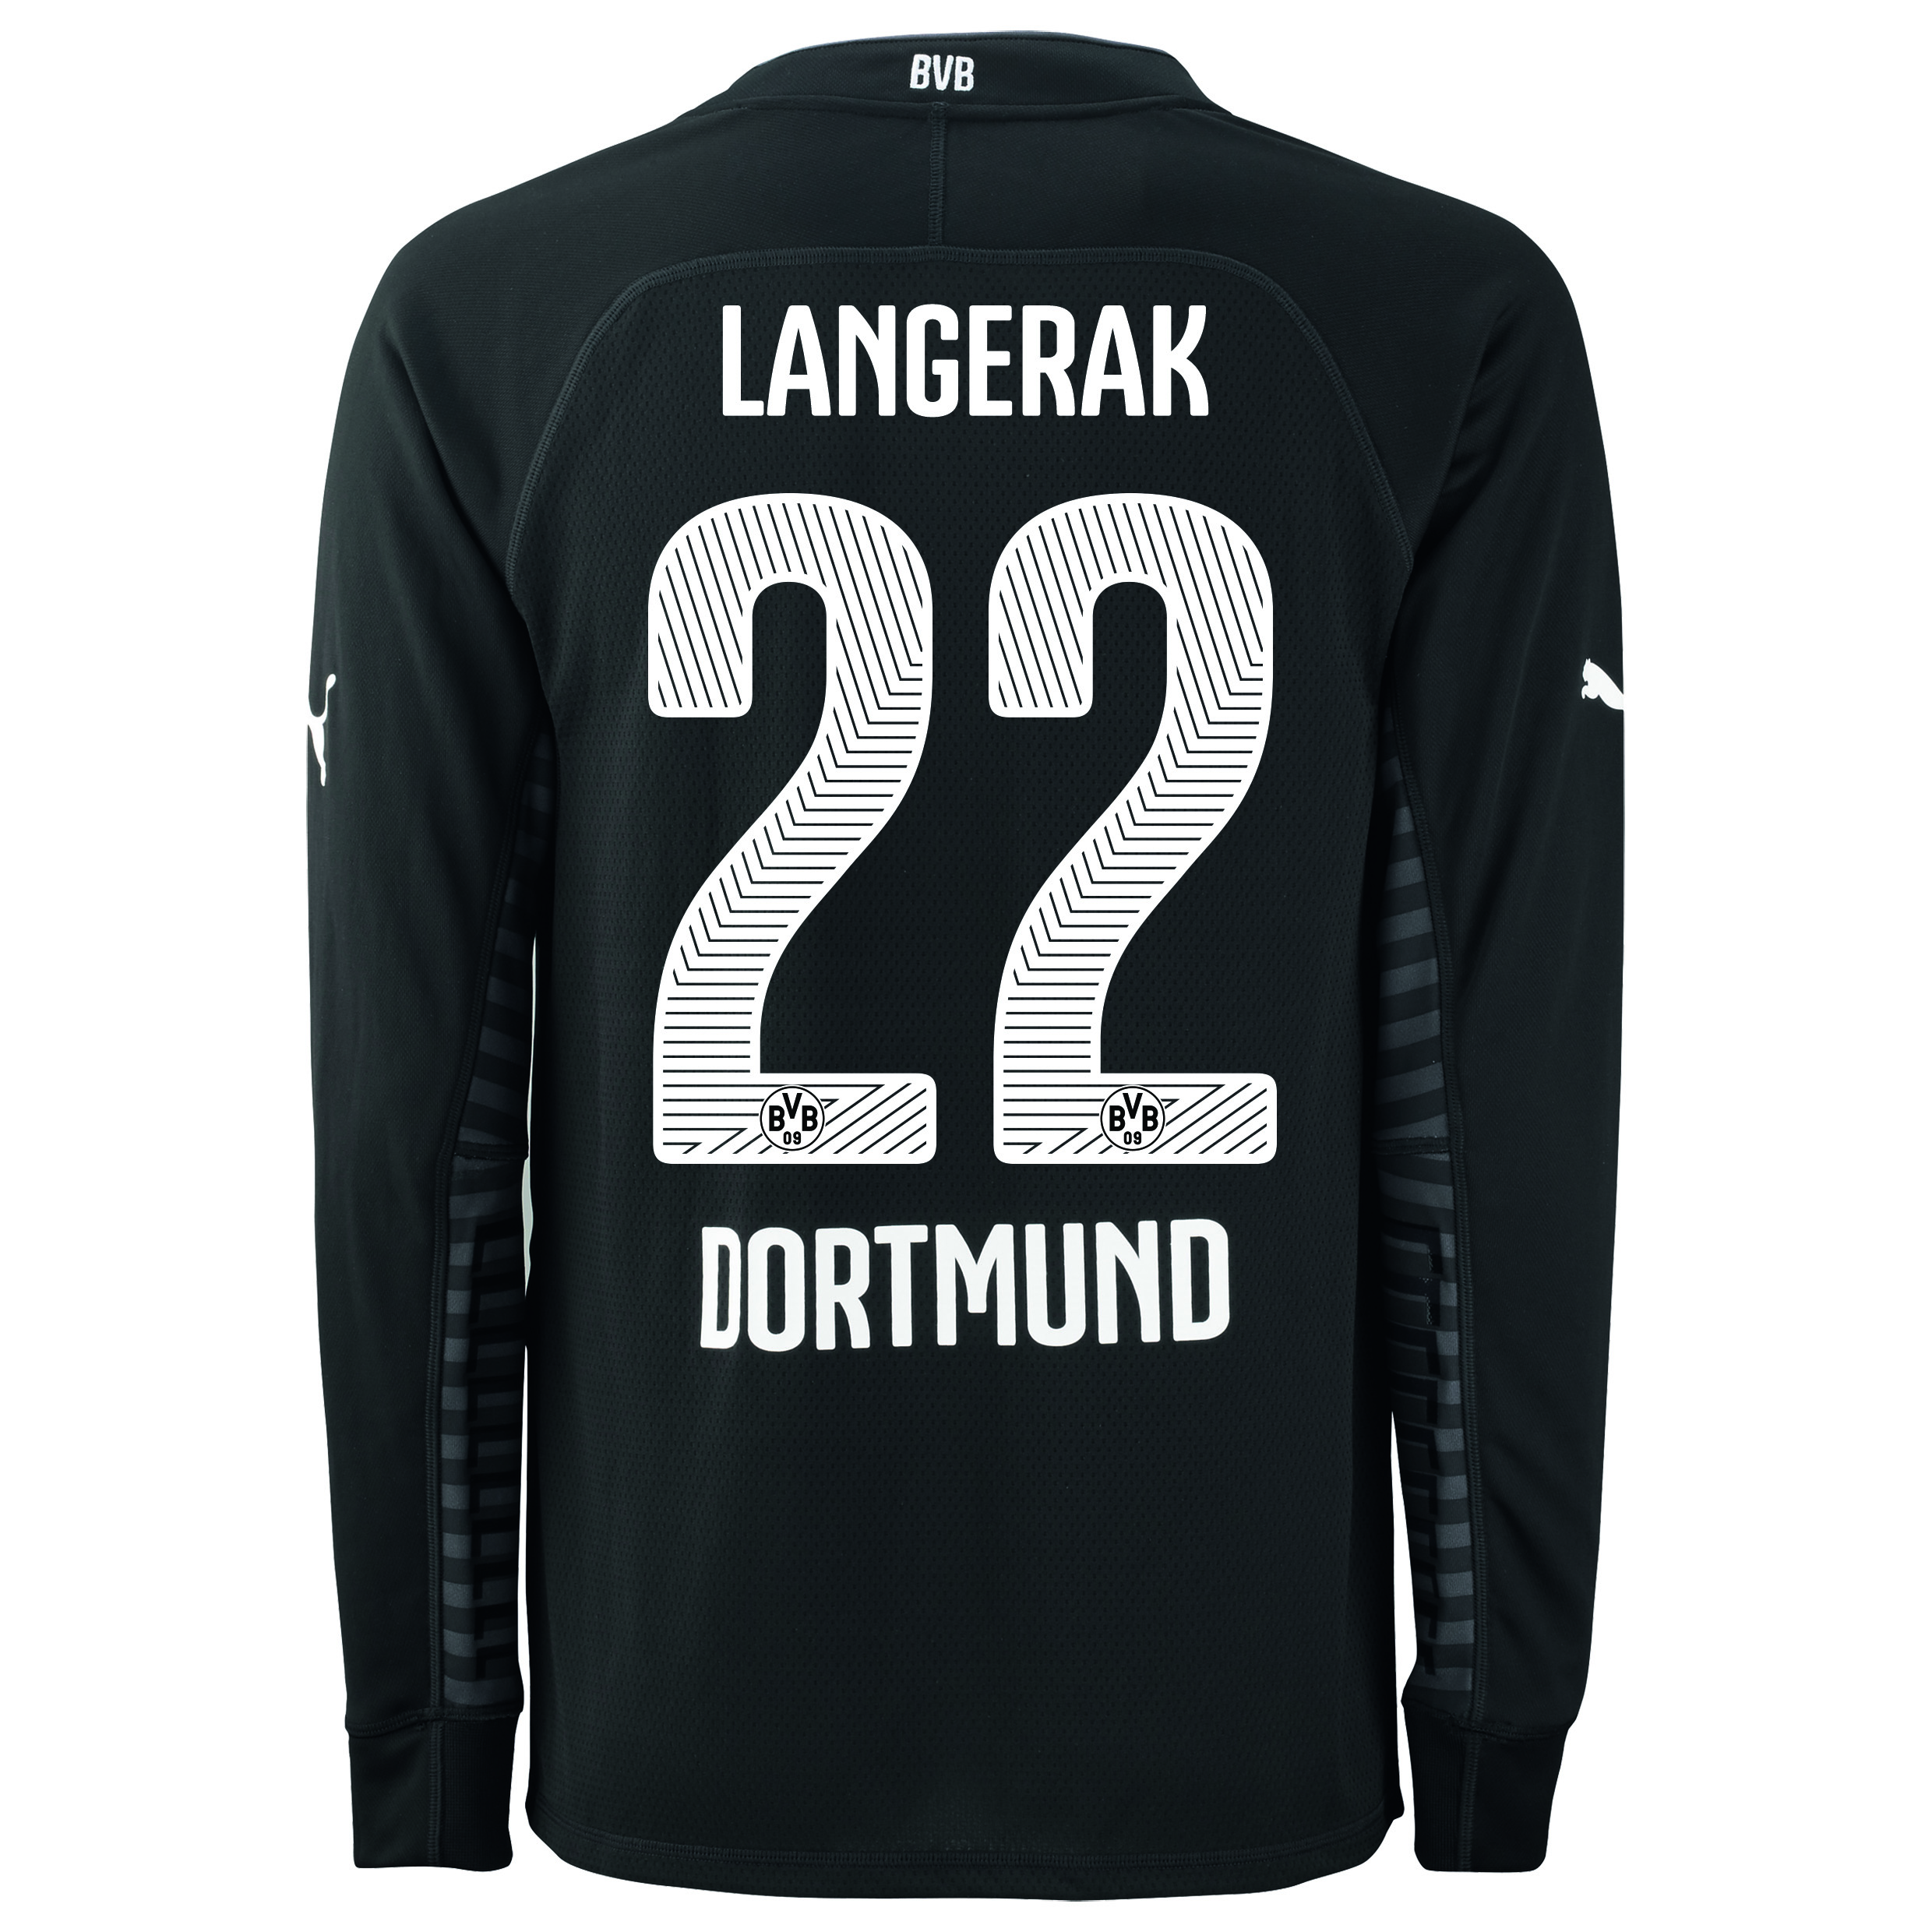 BVB Home Goalkeeper Shirt 2014/15 Black with Langerak 22 printing